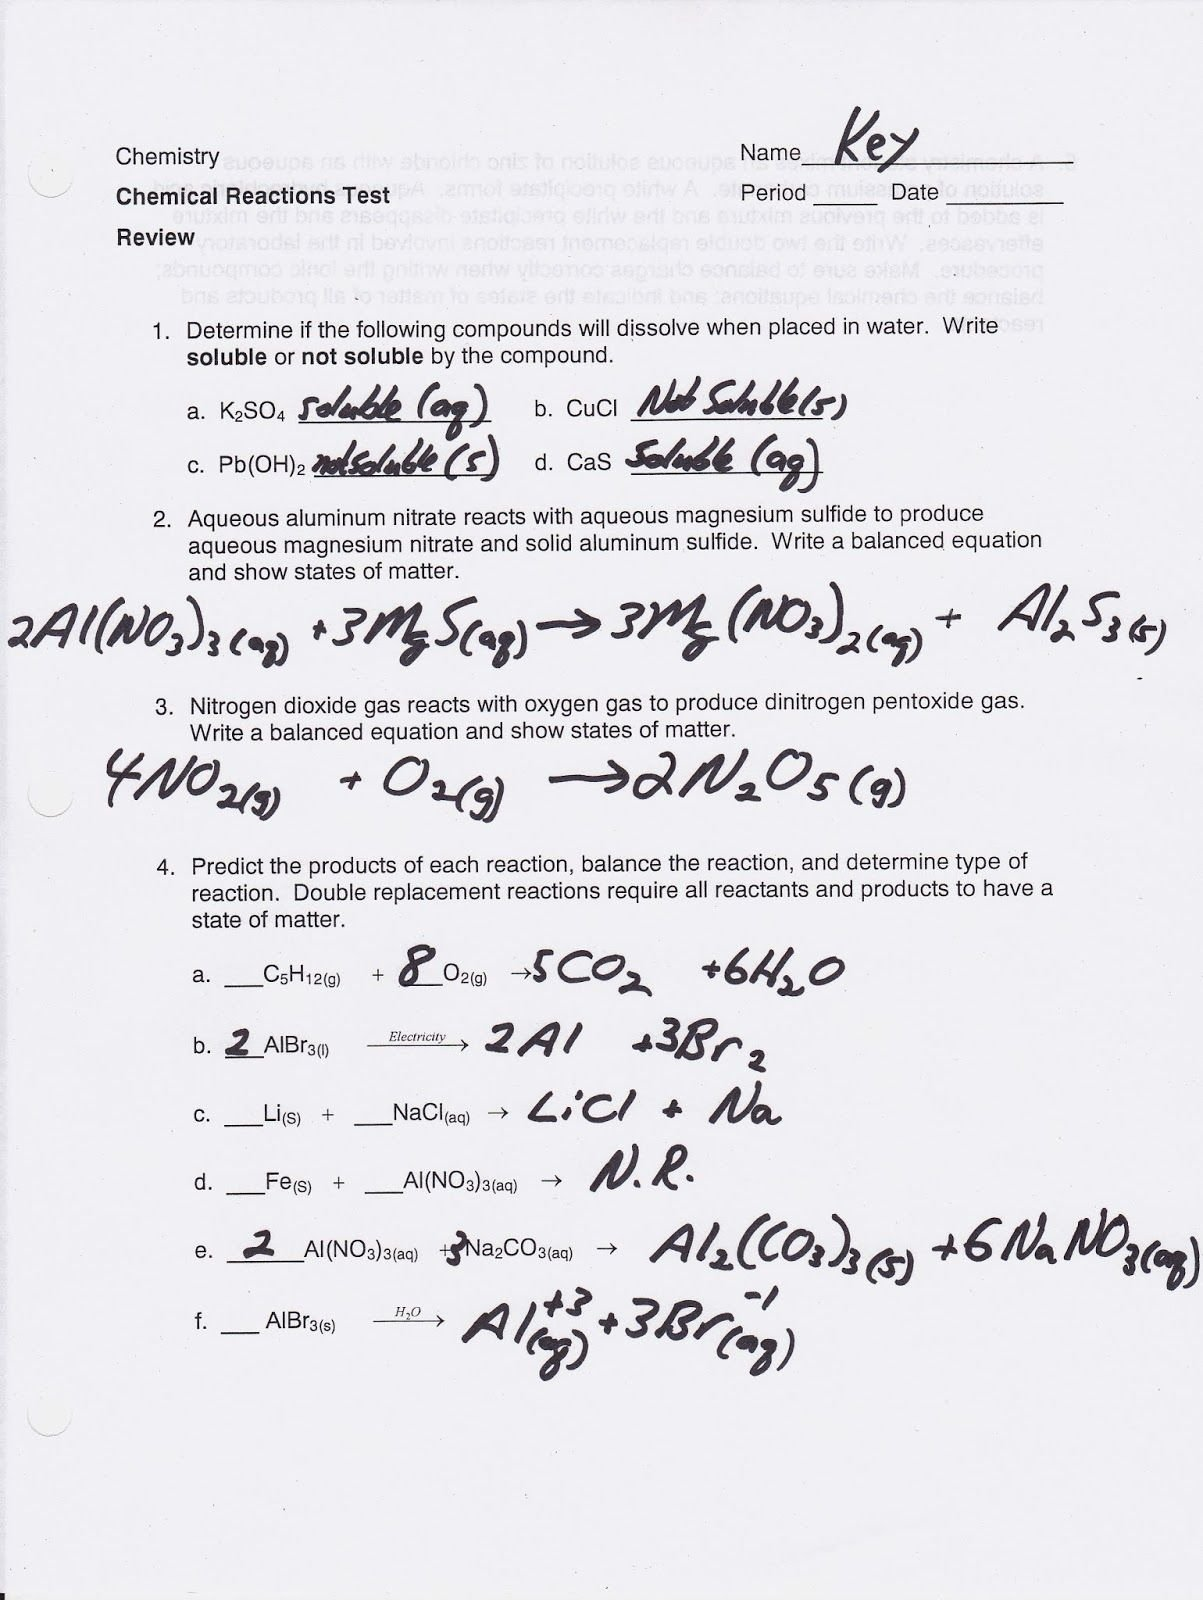 Classification Of Matter Worksheet Unique Chemistry 1 Worksheet Classification Matter and Changes